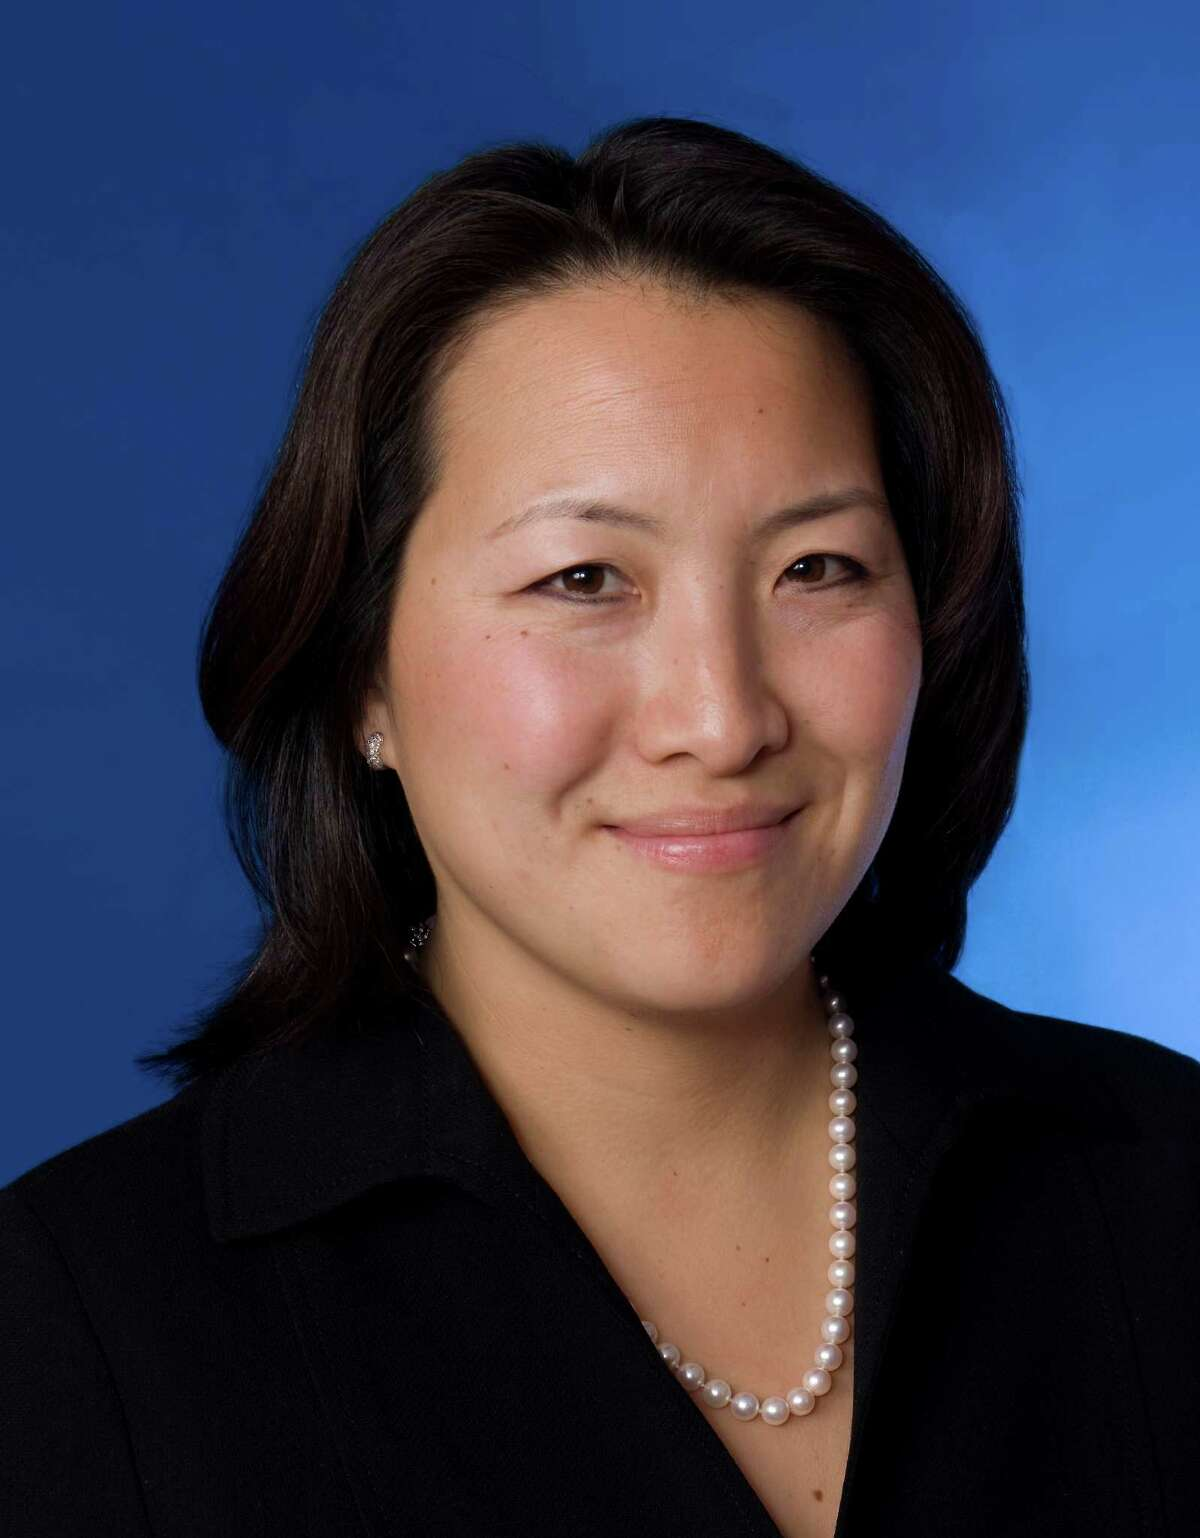 Julie Min Chayet has joined U.S. Trust as a senior vice president and market trust director. Chayet, a Weston resident, will have oversight for the county and will be based in the firm's Stamford office. Prior to joining U.S. Trust, she was a managing director at Fiduciary Trust International. Prior to joining Fiduciary Trust, Chayet practiced law in both New York and Connecticut specializing in estate planning and settlement and provided advice on philanthropic endeavors for corporations, nonprofit institutions and individuals. She is a member of the Connecticut and New York State bar associations and the National Asian Pacific American Bar Association.